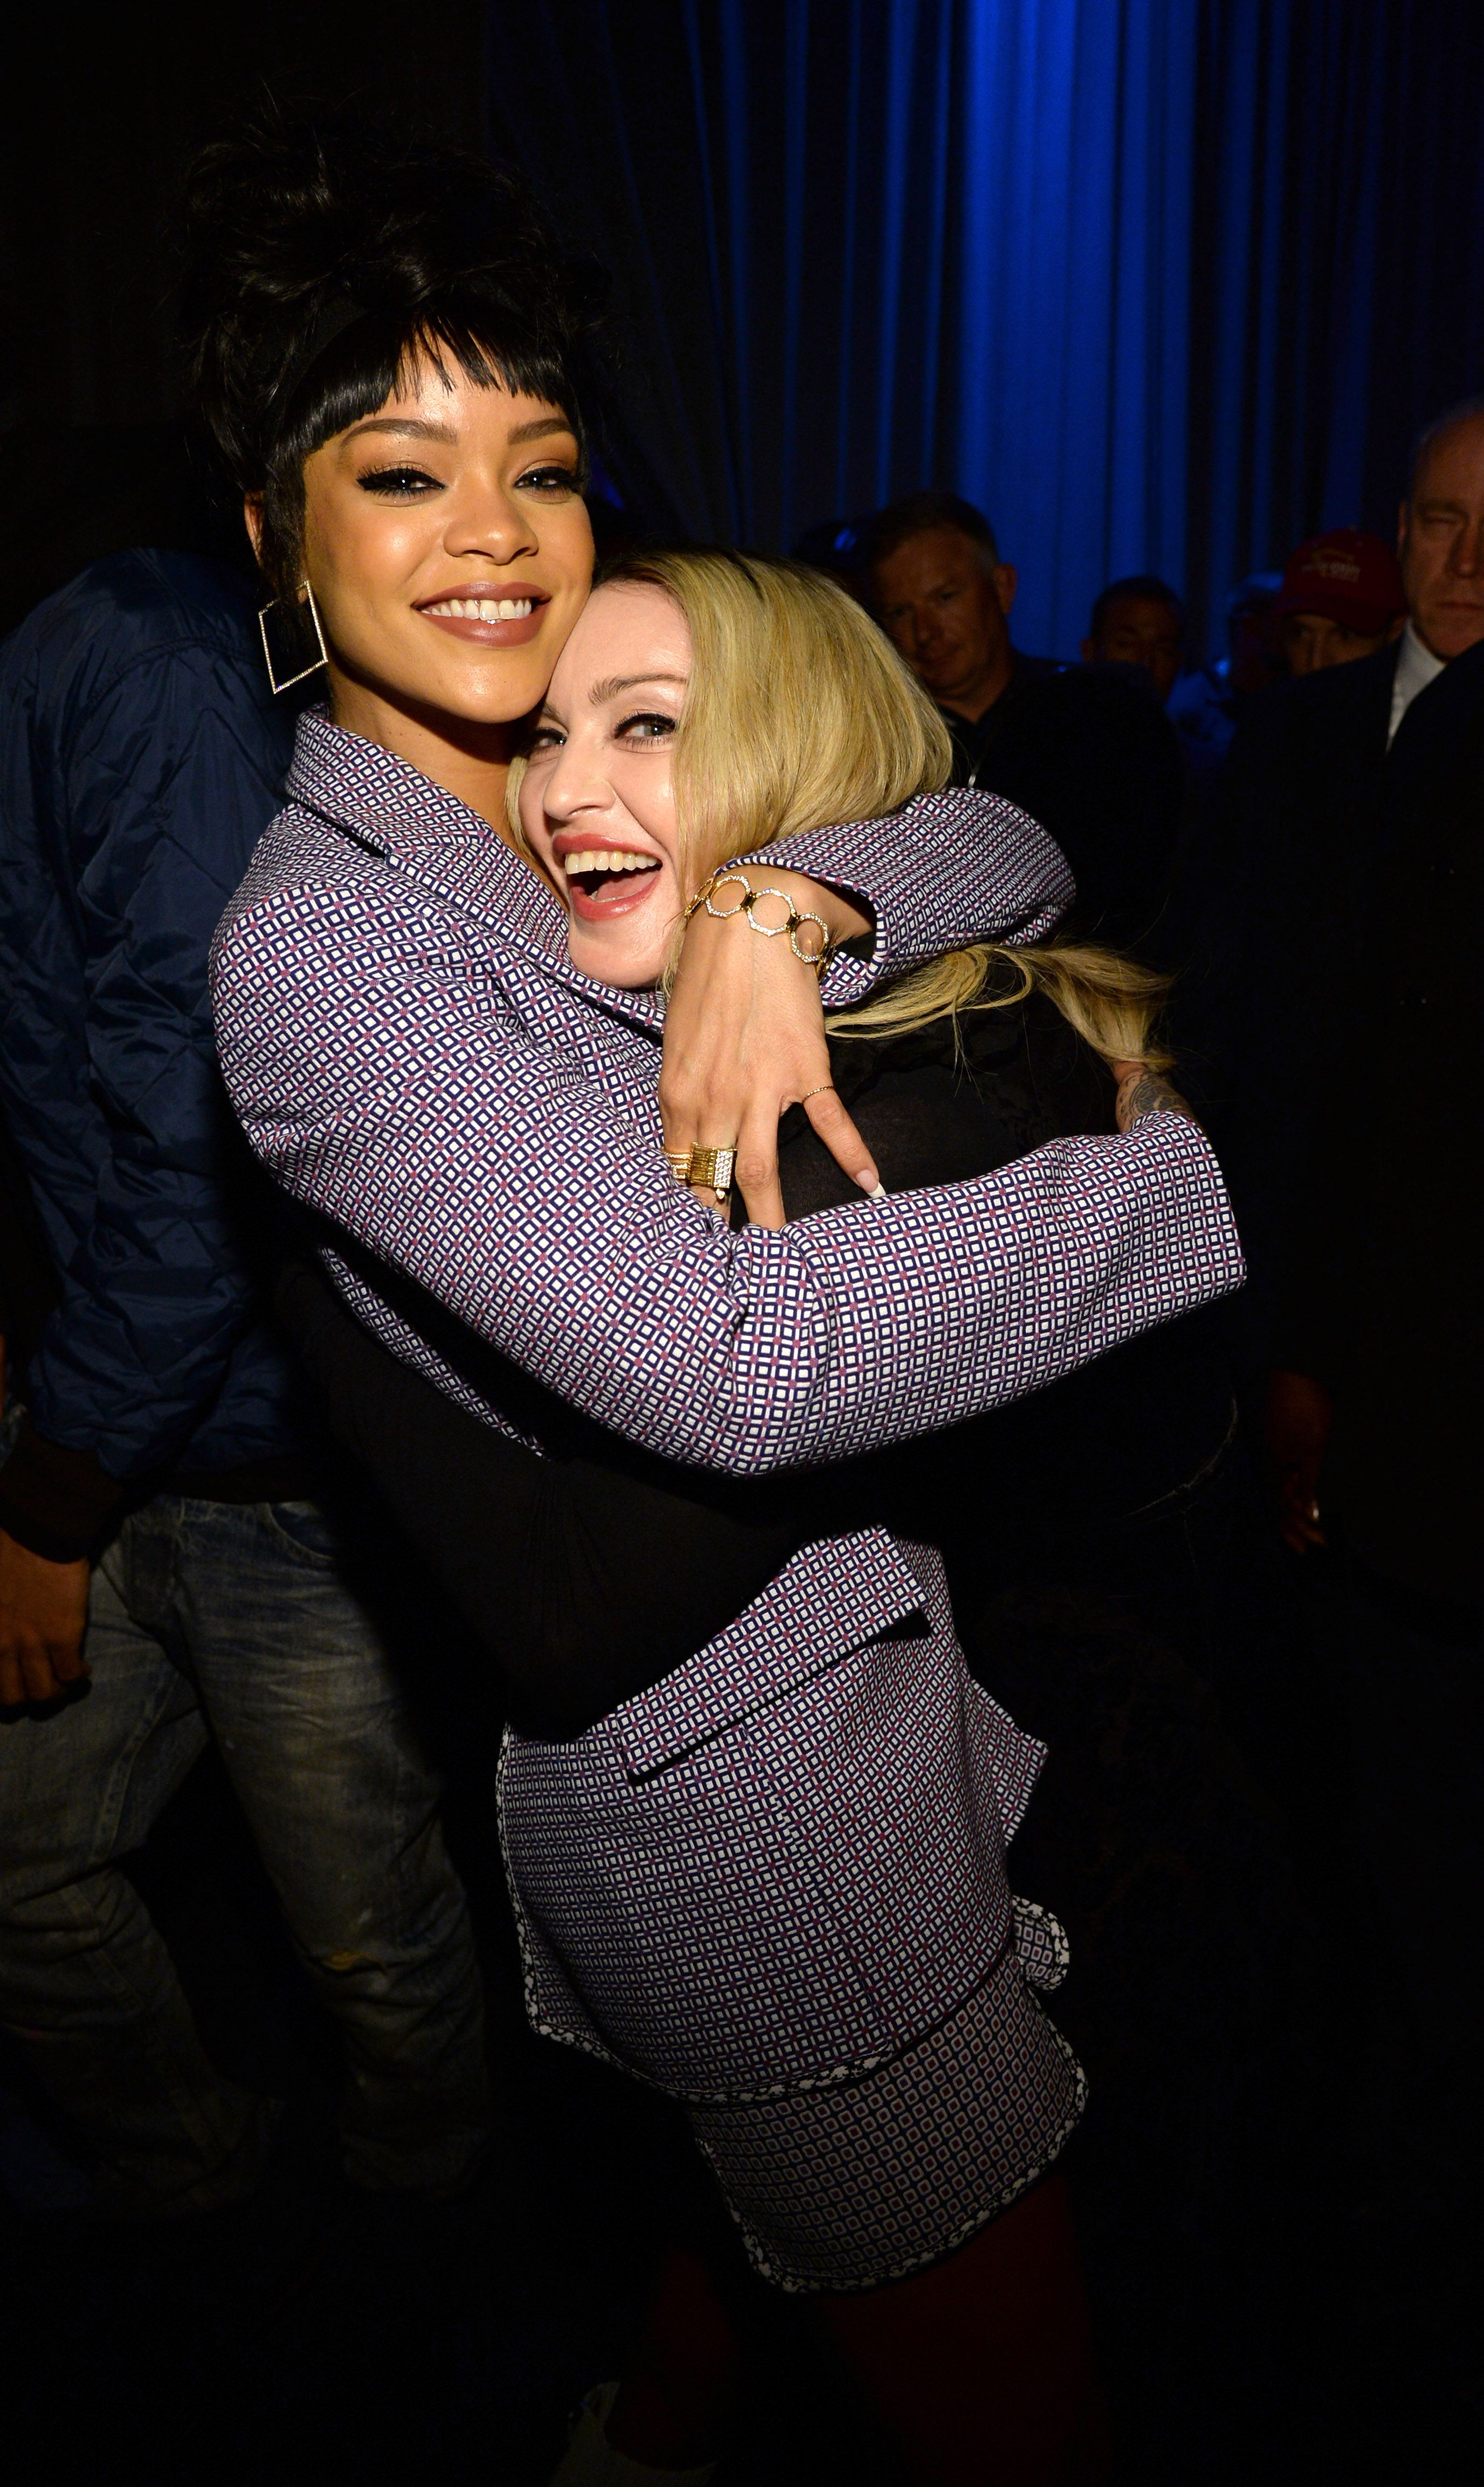 Rihanna and Madonna celebrating the launch of Jay Z's new streaming service, Tidal